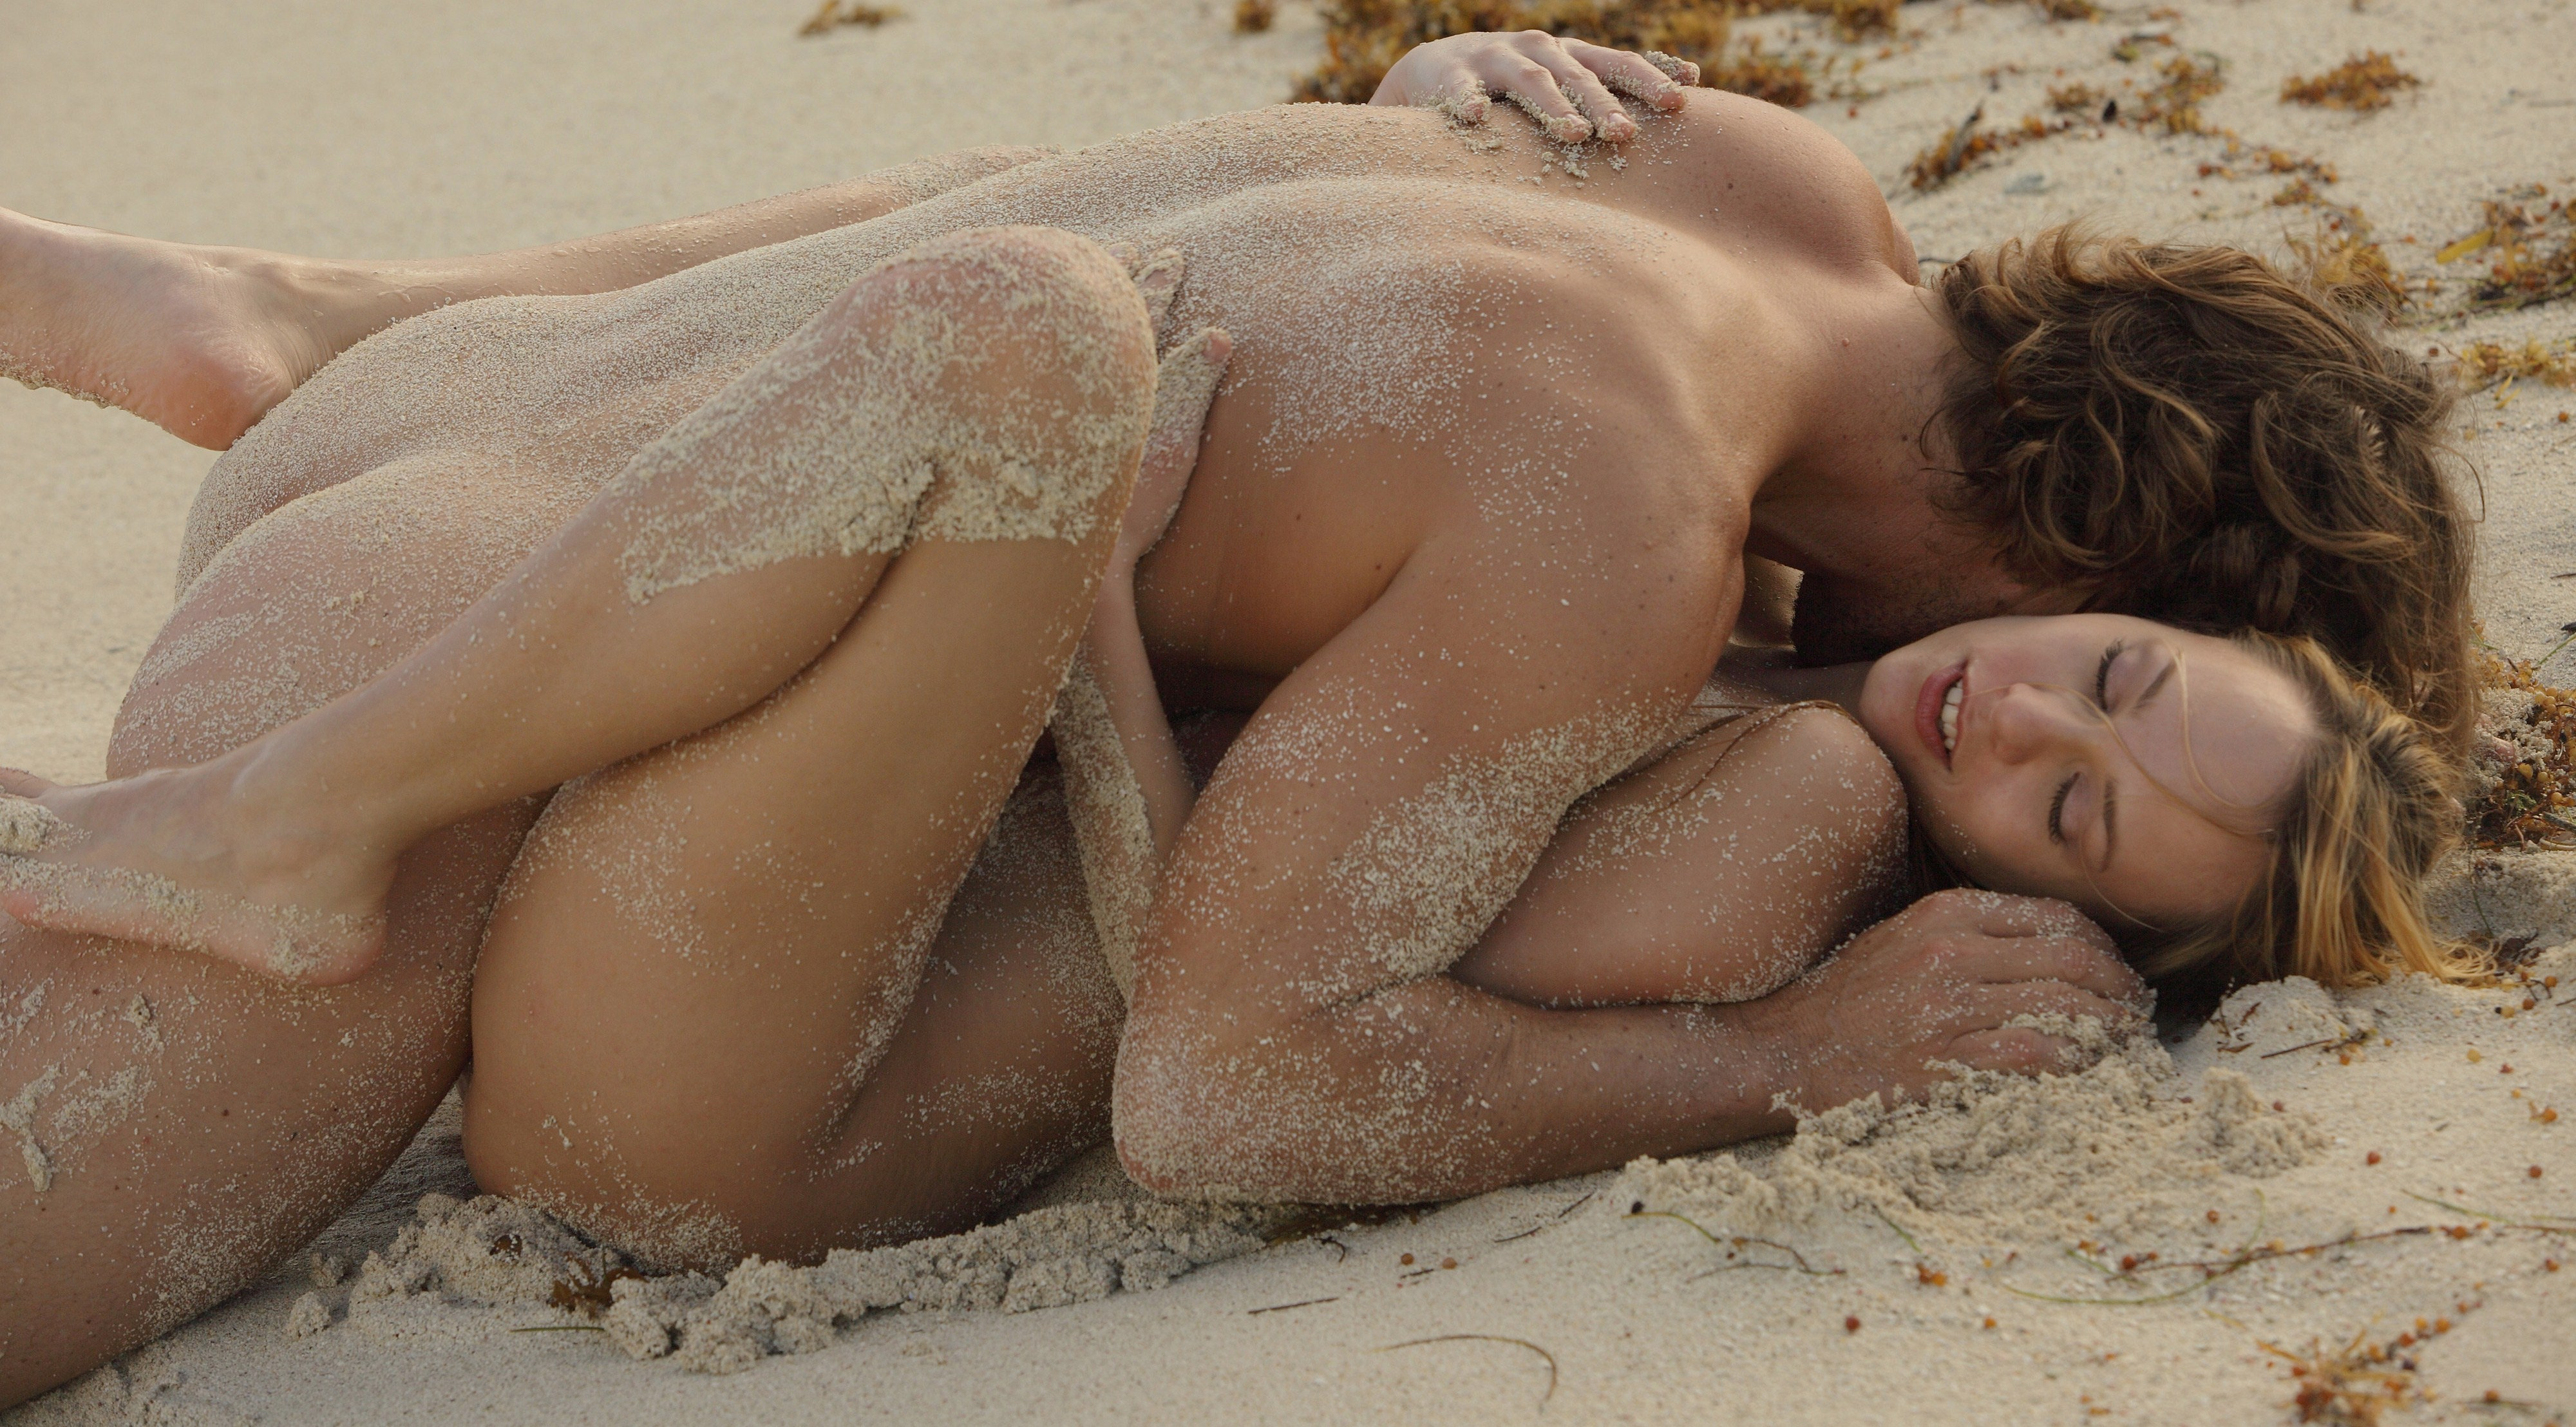 Seems excellent Intercourse on nude beach sorry, that